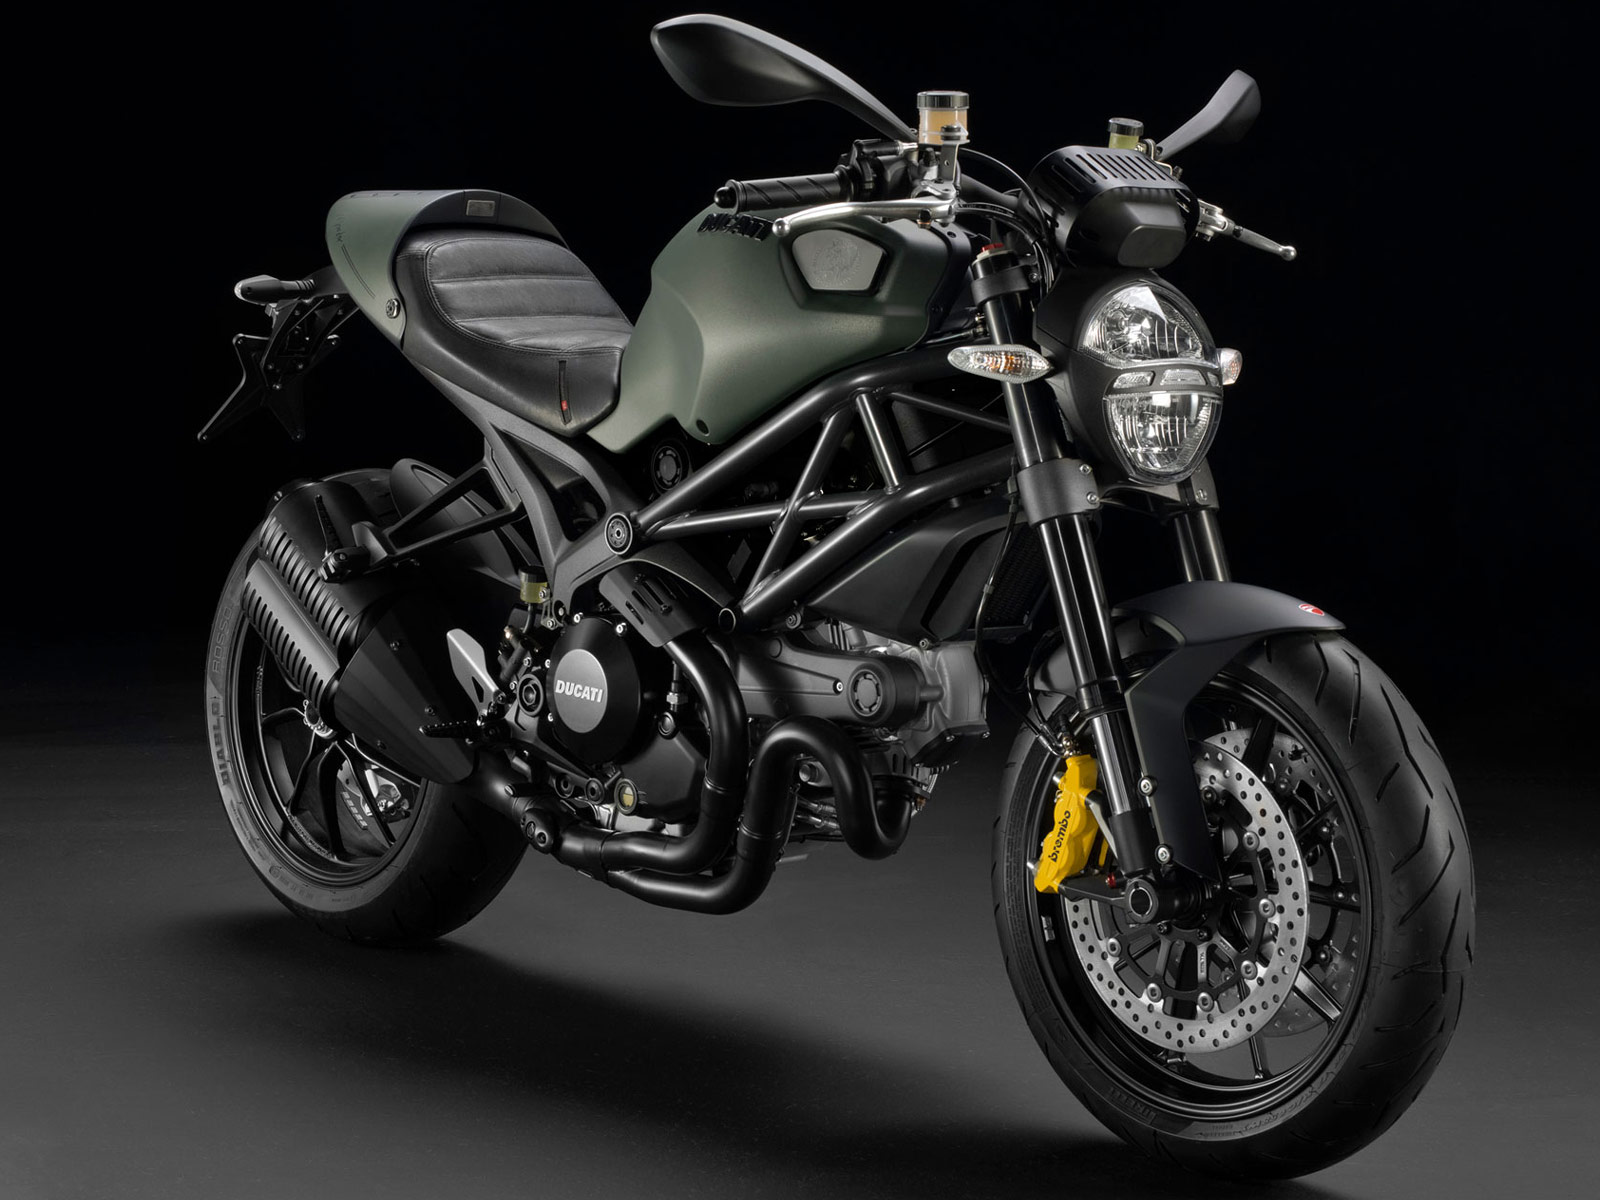 2013 ducati monster 1100 evo diesel motorcycle photos and specifications. Black Bedroom Furniture Sets. Home Design Ideas